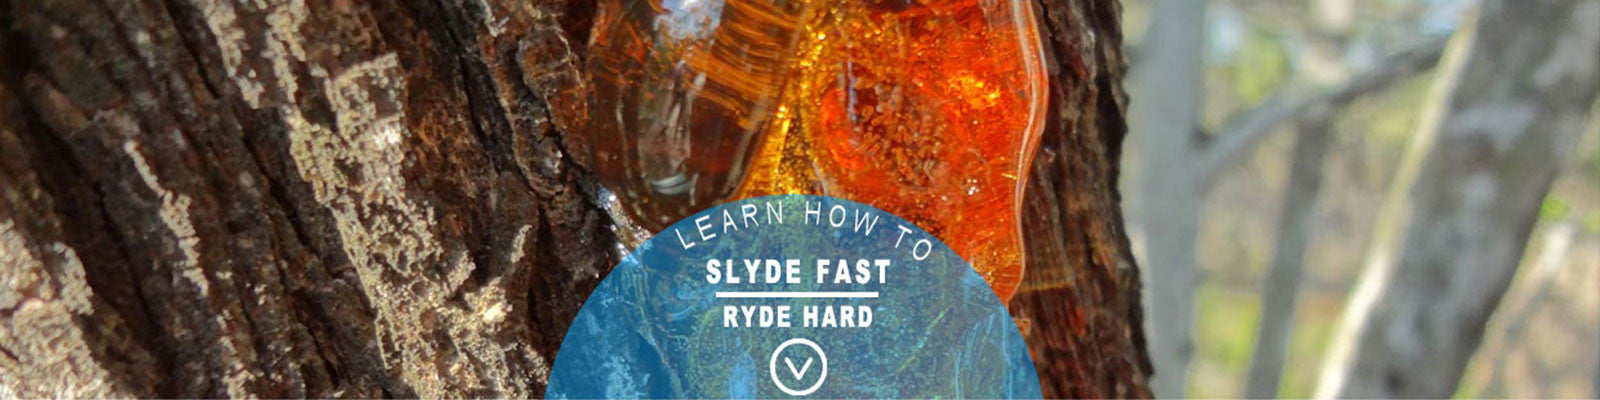 how to make eco friendly surfboard and handplane wax bodysurfing handplanes by slyde handboards